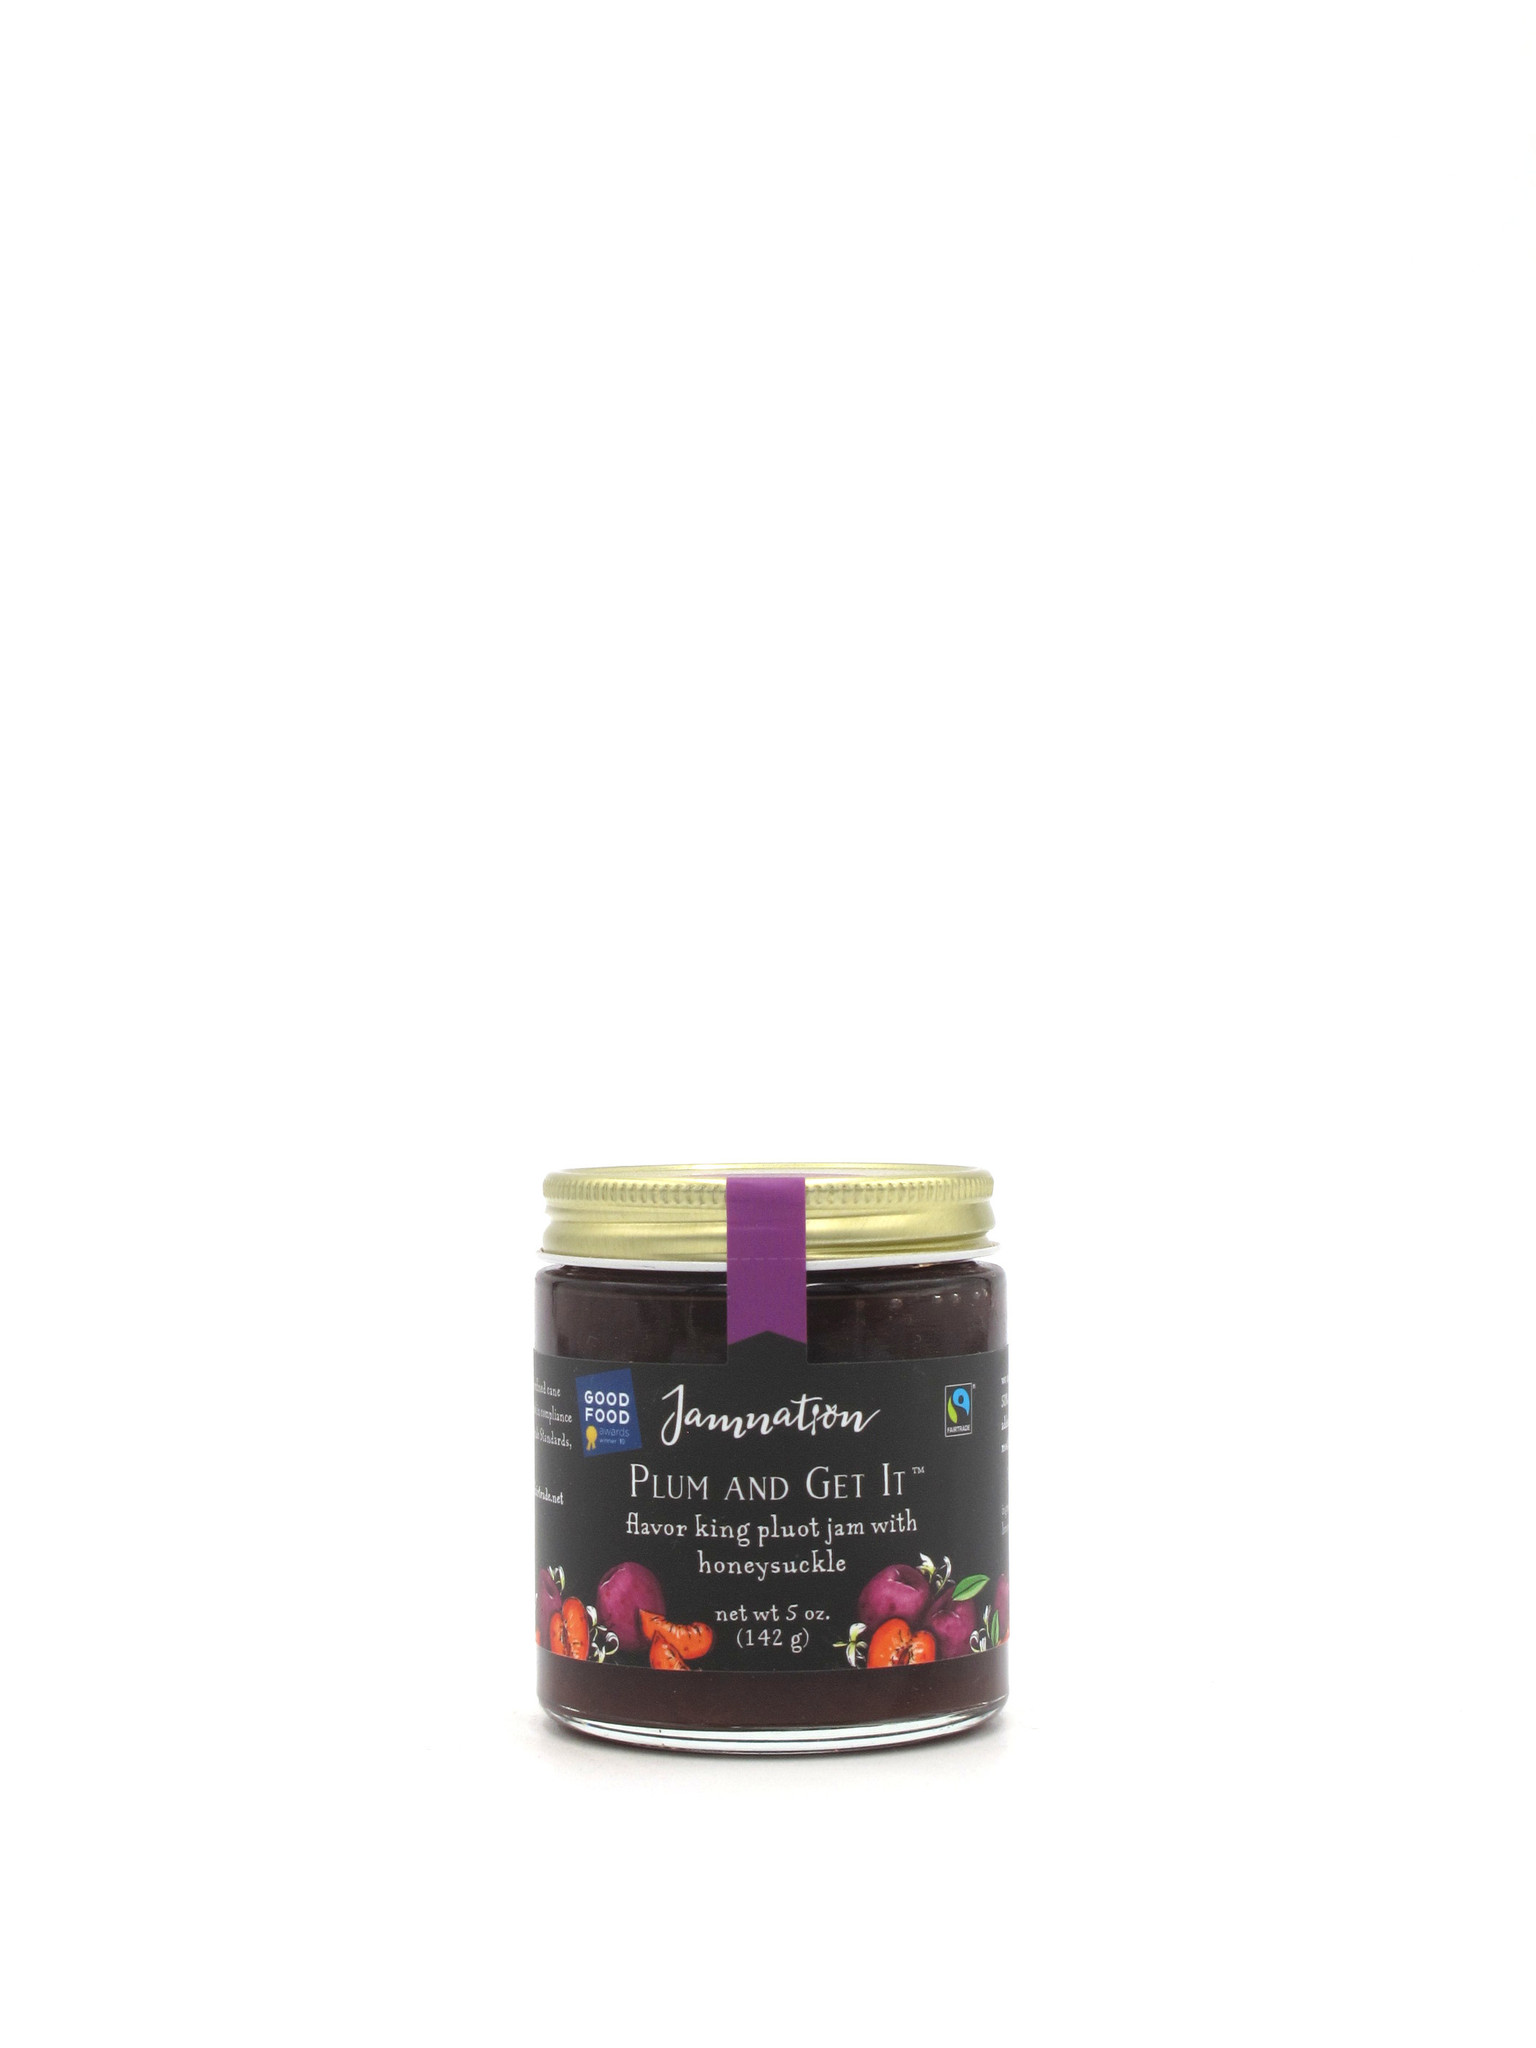 Jamnation Plum and Get It 5oz